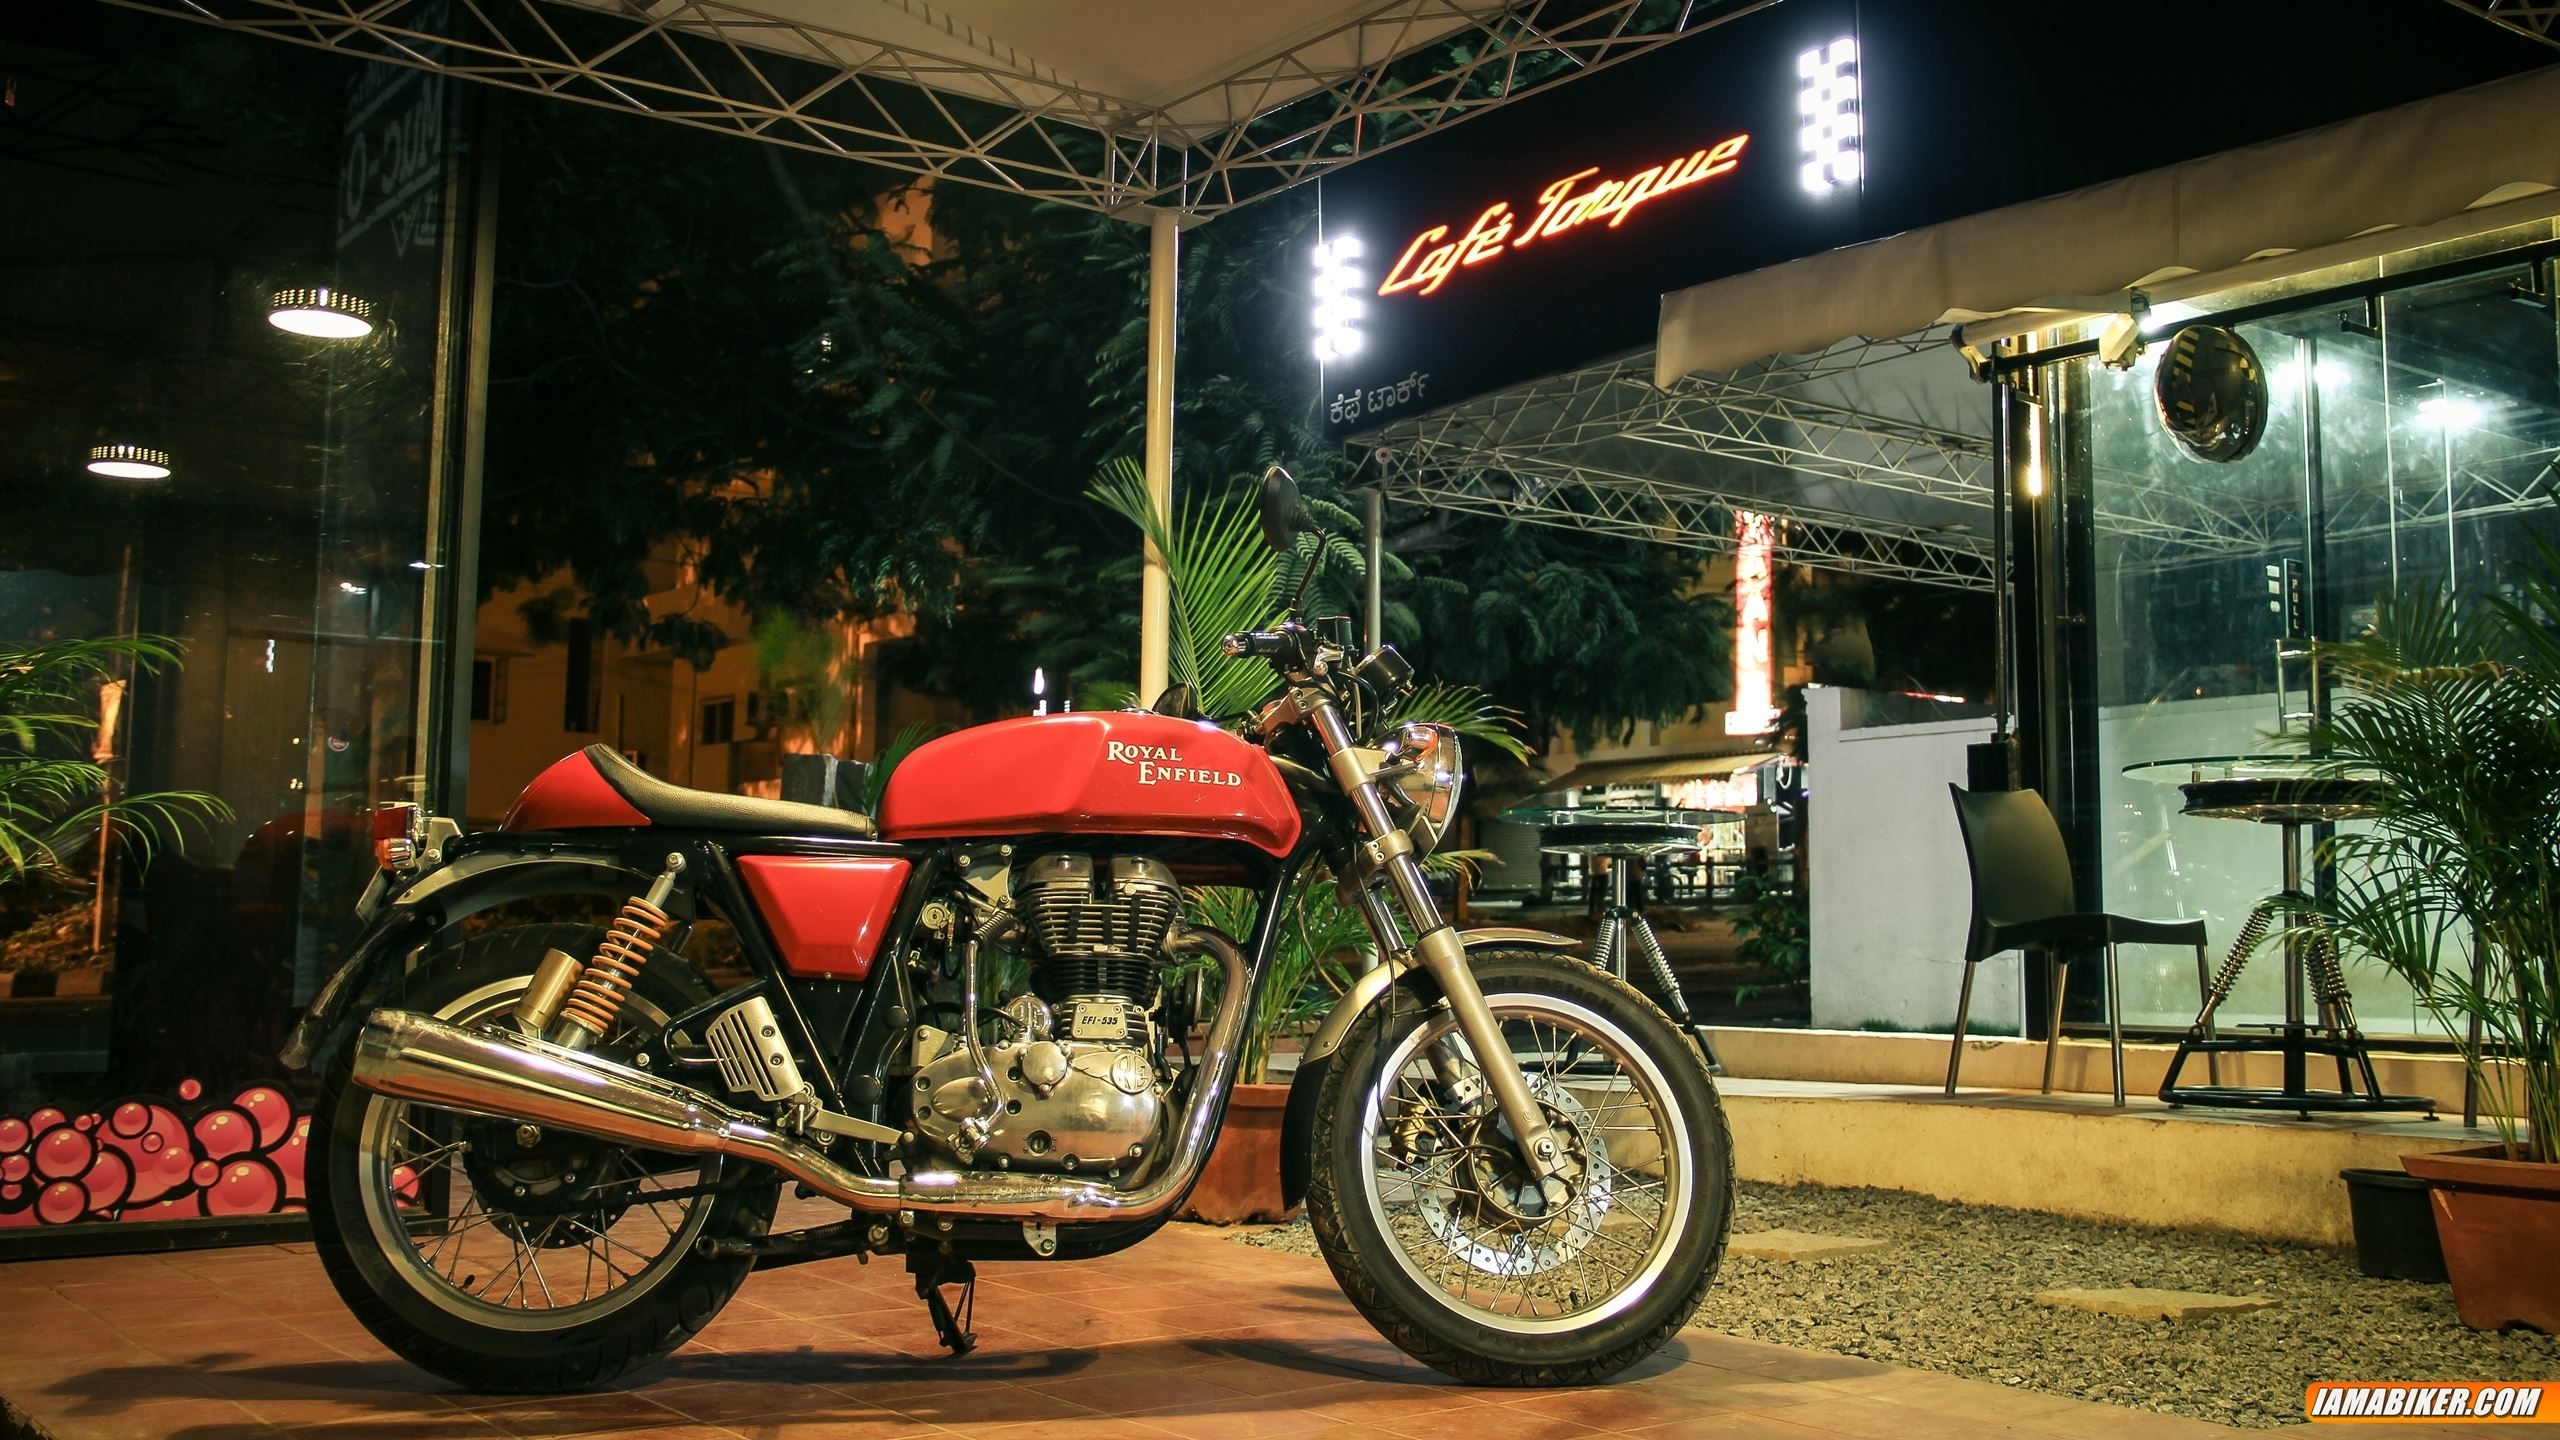 Hd wallpaper royal enfield - Royal Enfield Continental Gt Hd Wallpapers